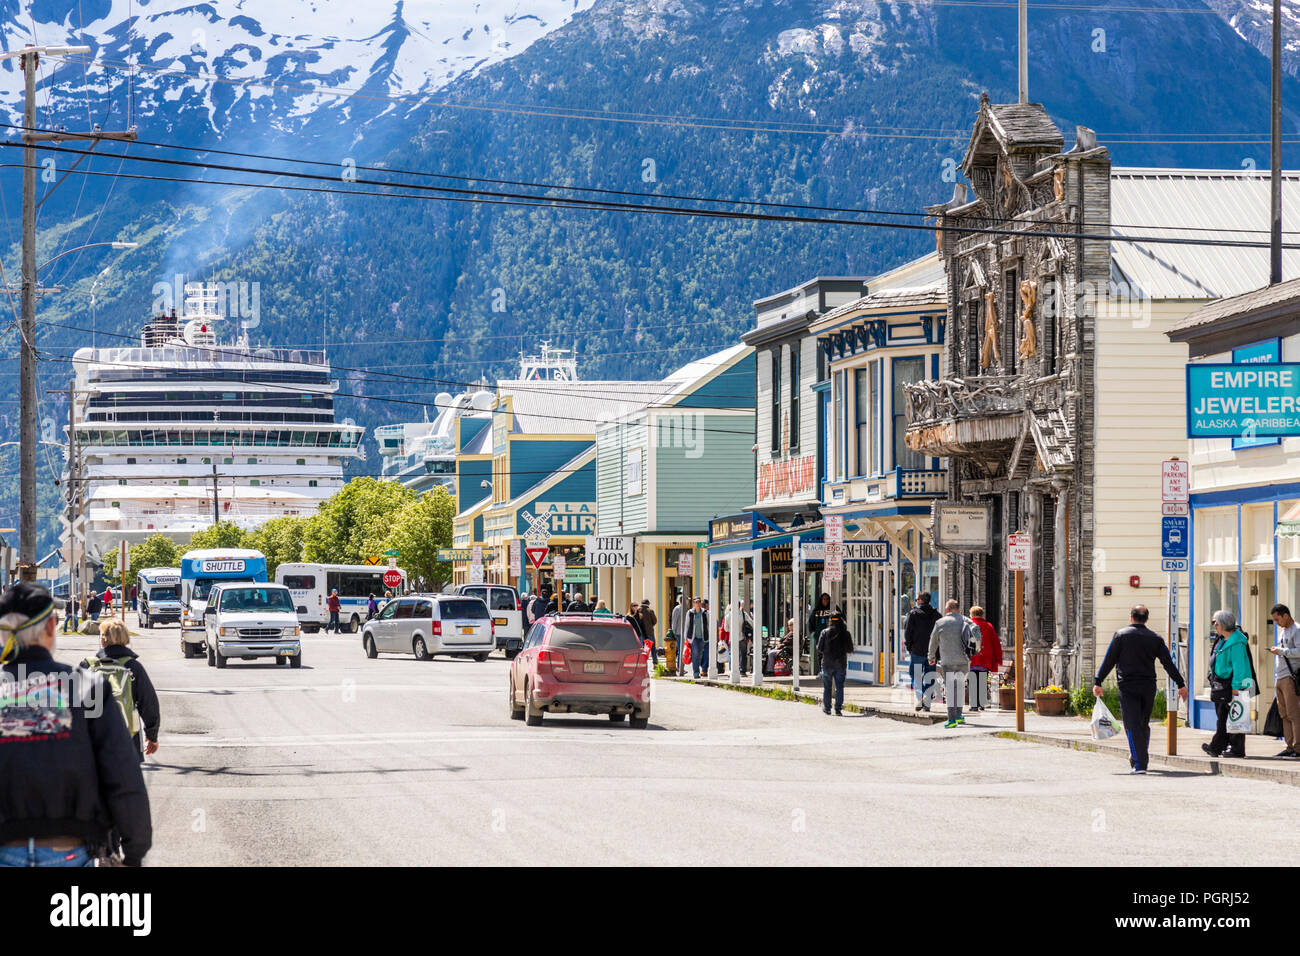 Cruise liners in the harbour very close to the tourist shops in the main street in Skagway, Alaska USA - Stock Image